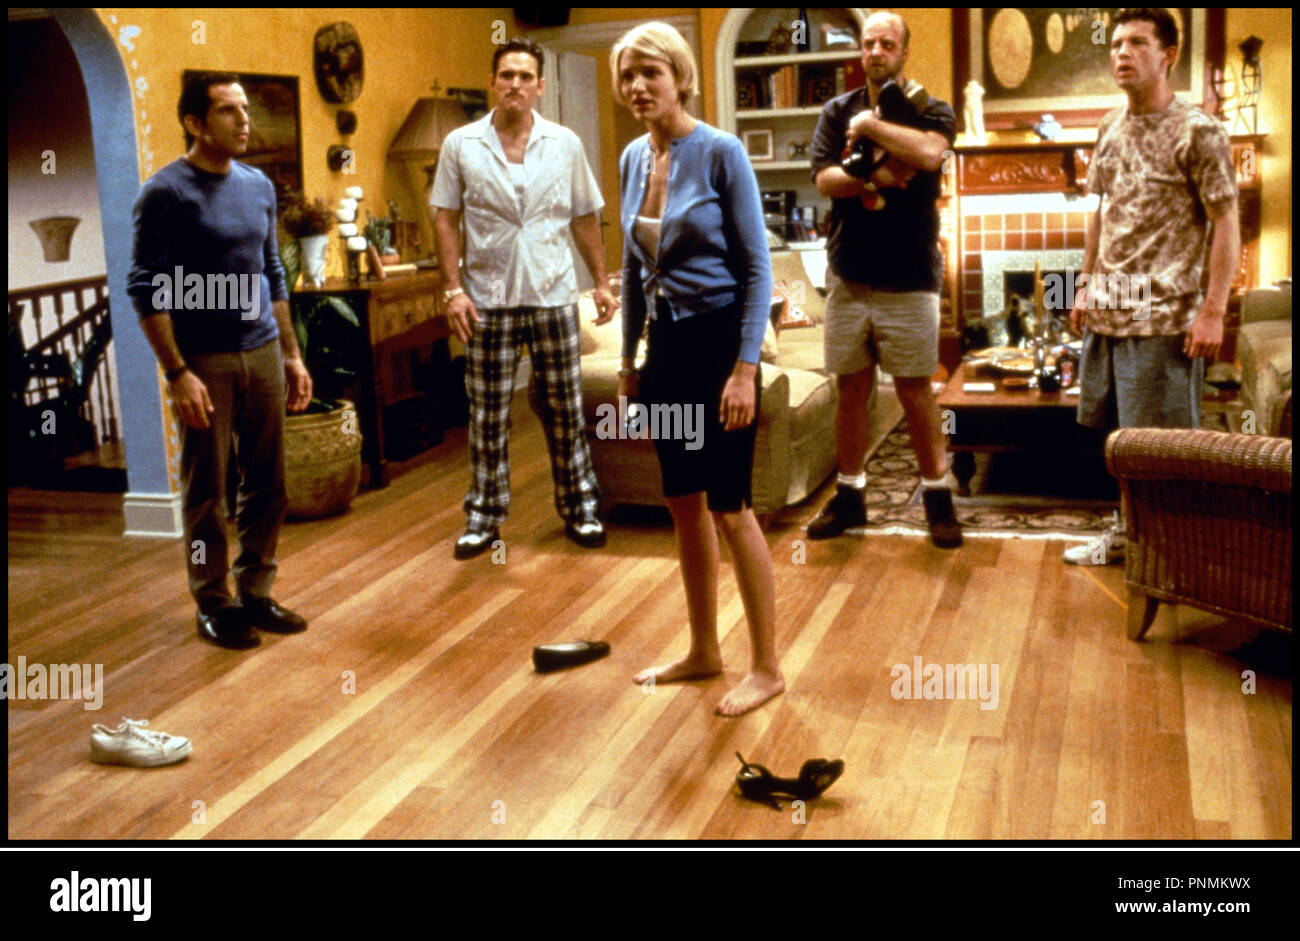 Prod DB © 20 th Century Fox /DR MARY A TOUT PRIX (THERE'S SOMETHING ABOUT MARY) de Bobby et Peter Farrelly 1998 USA avec Ben Stiller, Matt Dillon, Cameron Diaz, Chris Elliot et Lee Evans pieds nus, encercler, salon - Stock Image